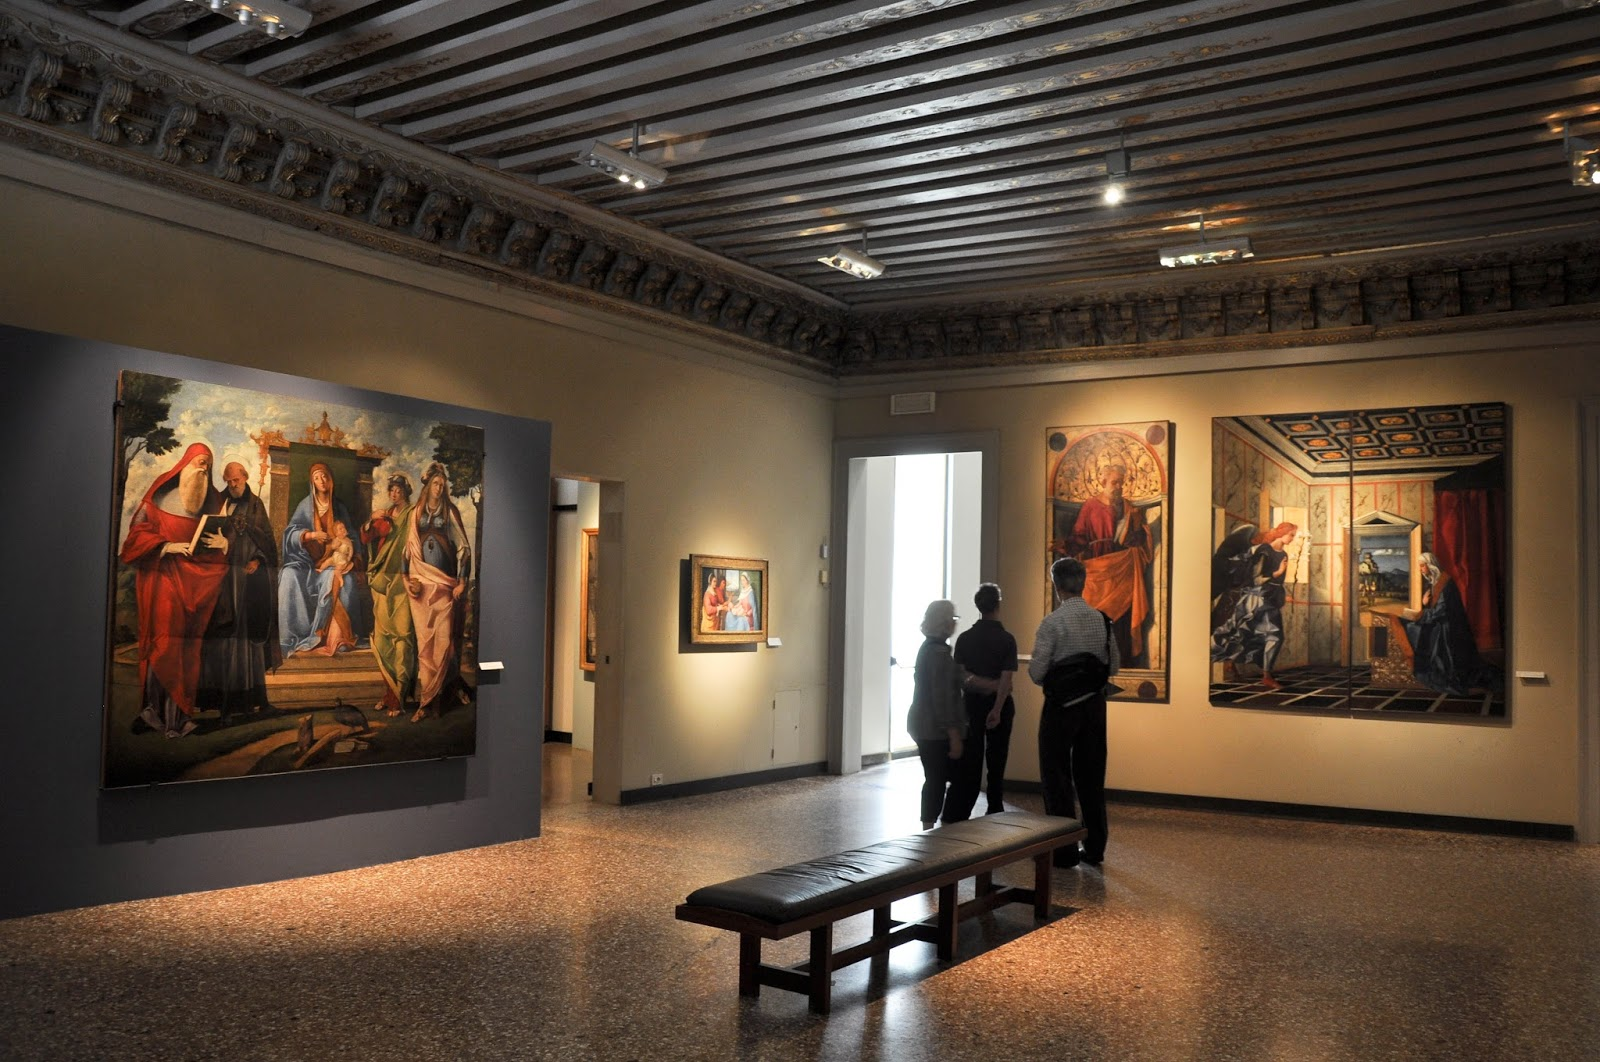 Inside Gallerie dell'Accademia in Venice